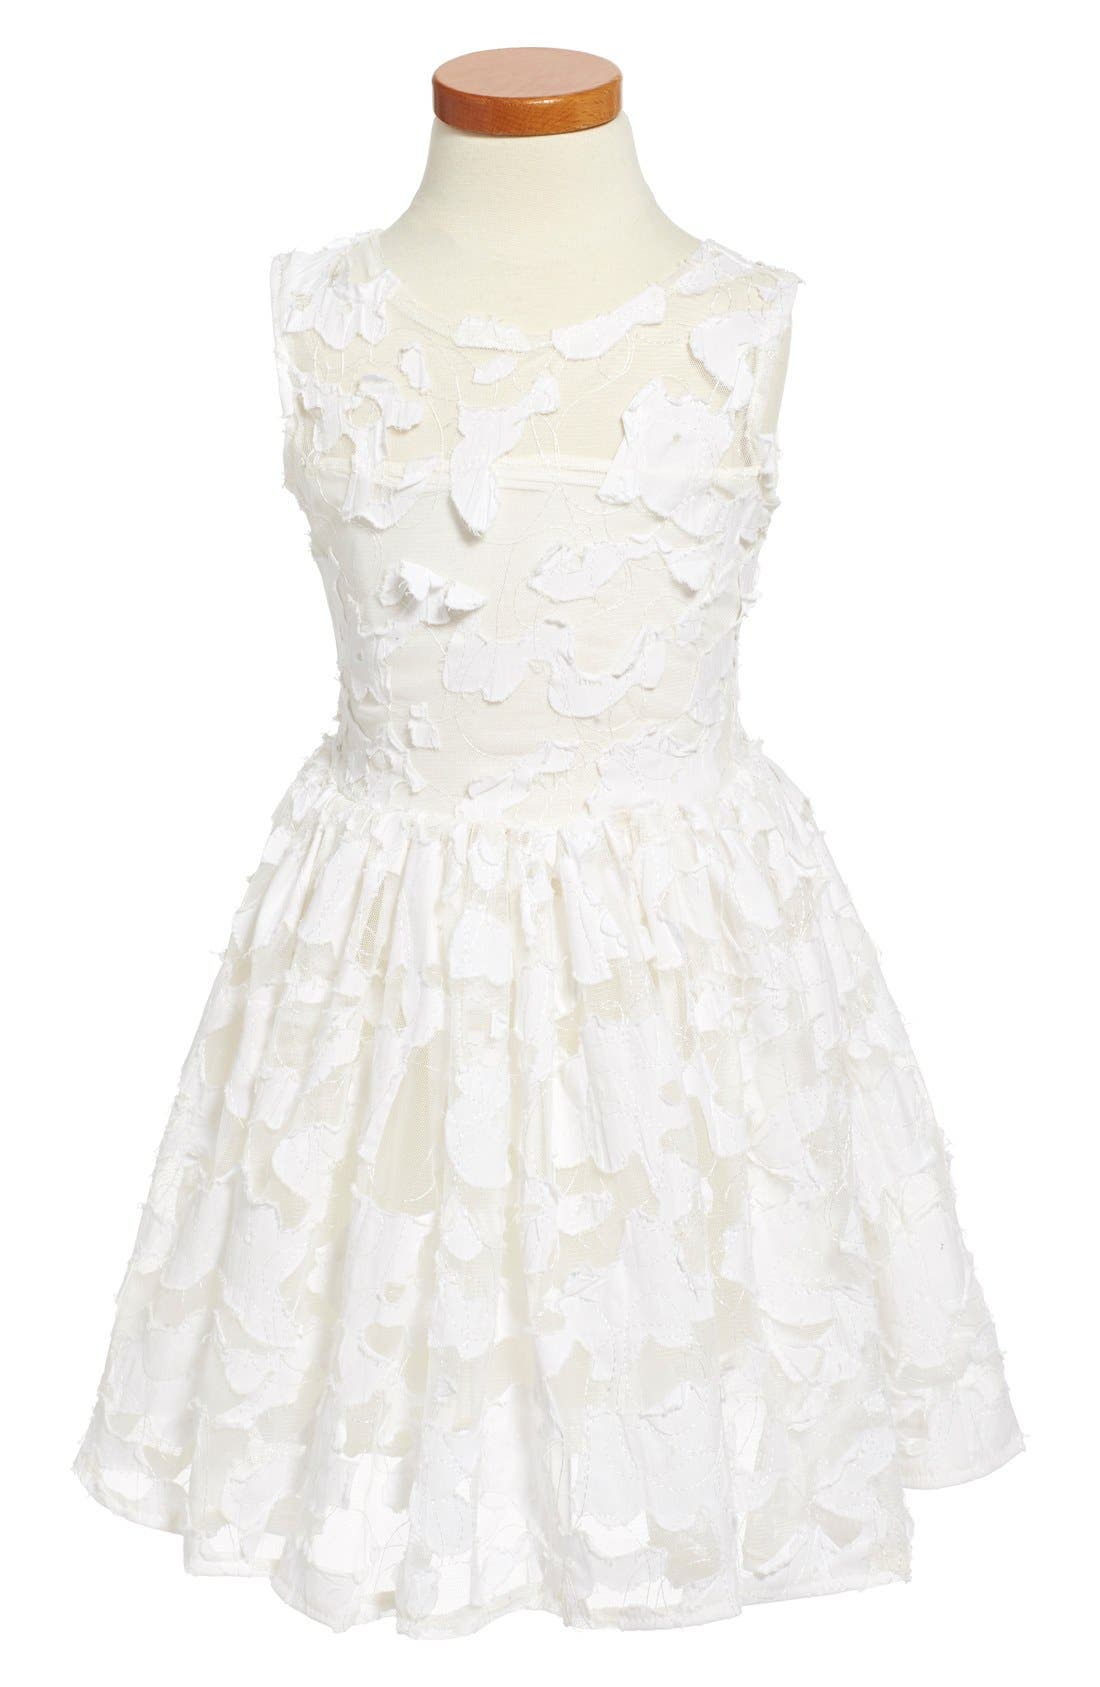 Main Image - Fiveloaves Twofish 'Pretty in Ivory' Party Dress (Toddler Girls, Little Girls & Big Girls)